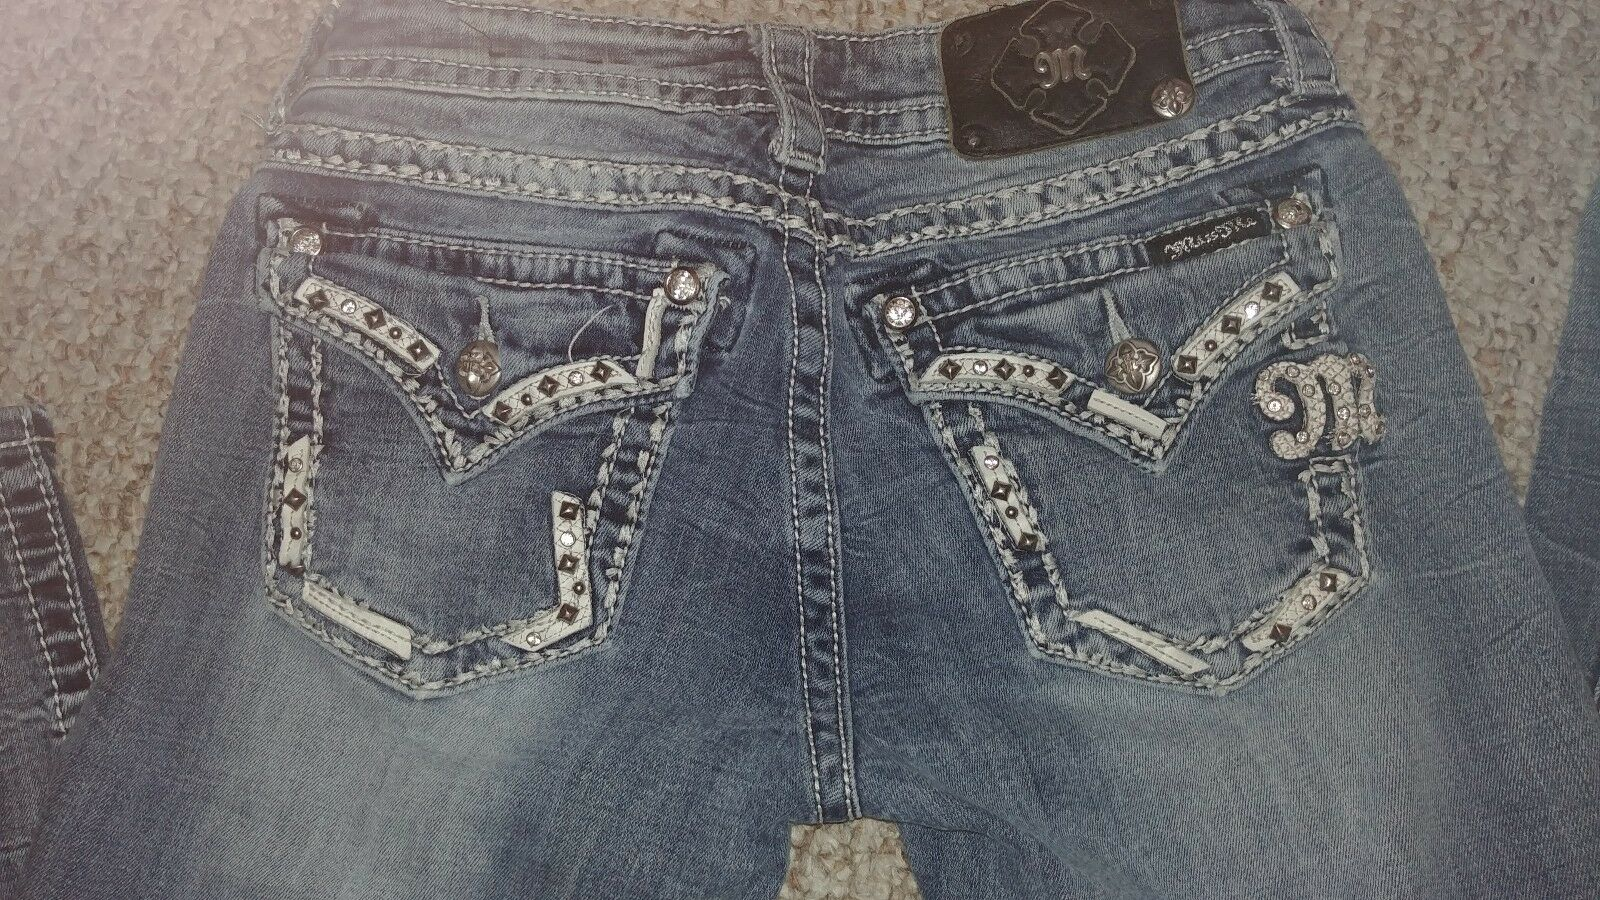 Miss Me jeans size 27 used good condition